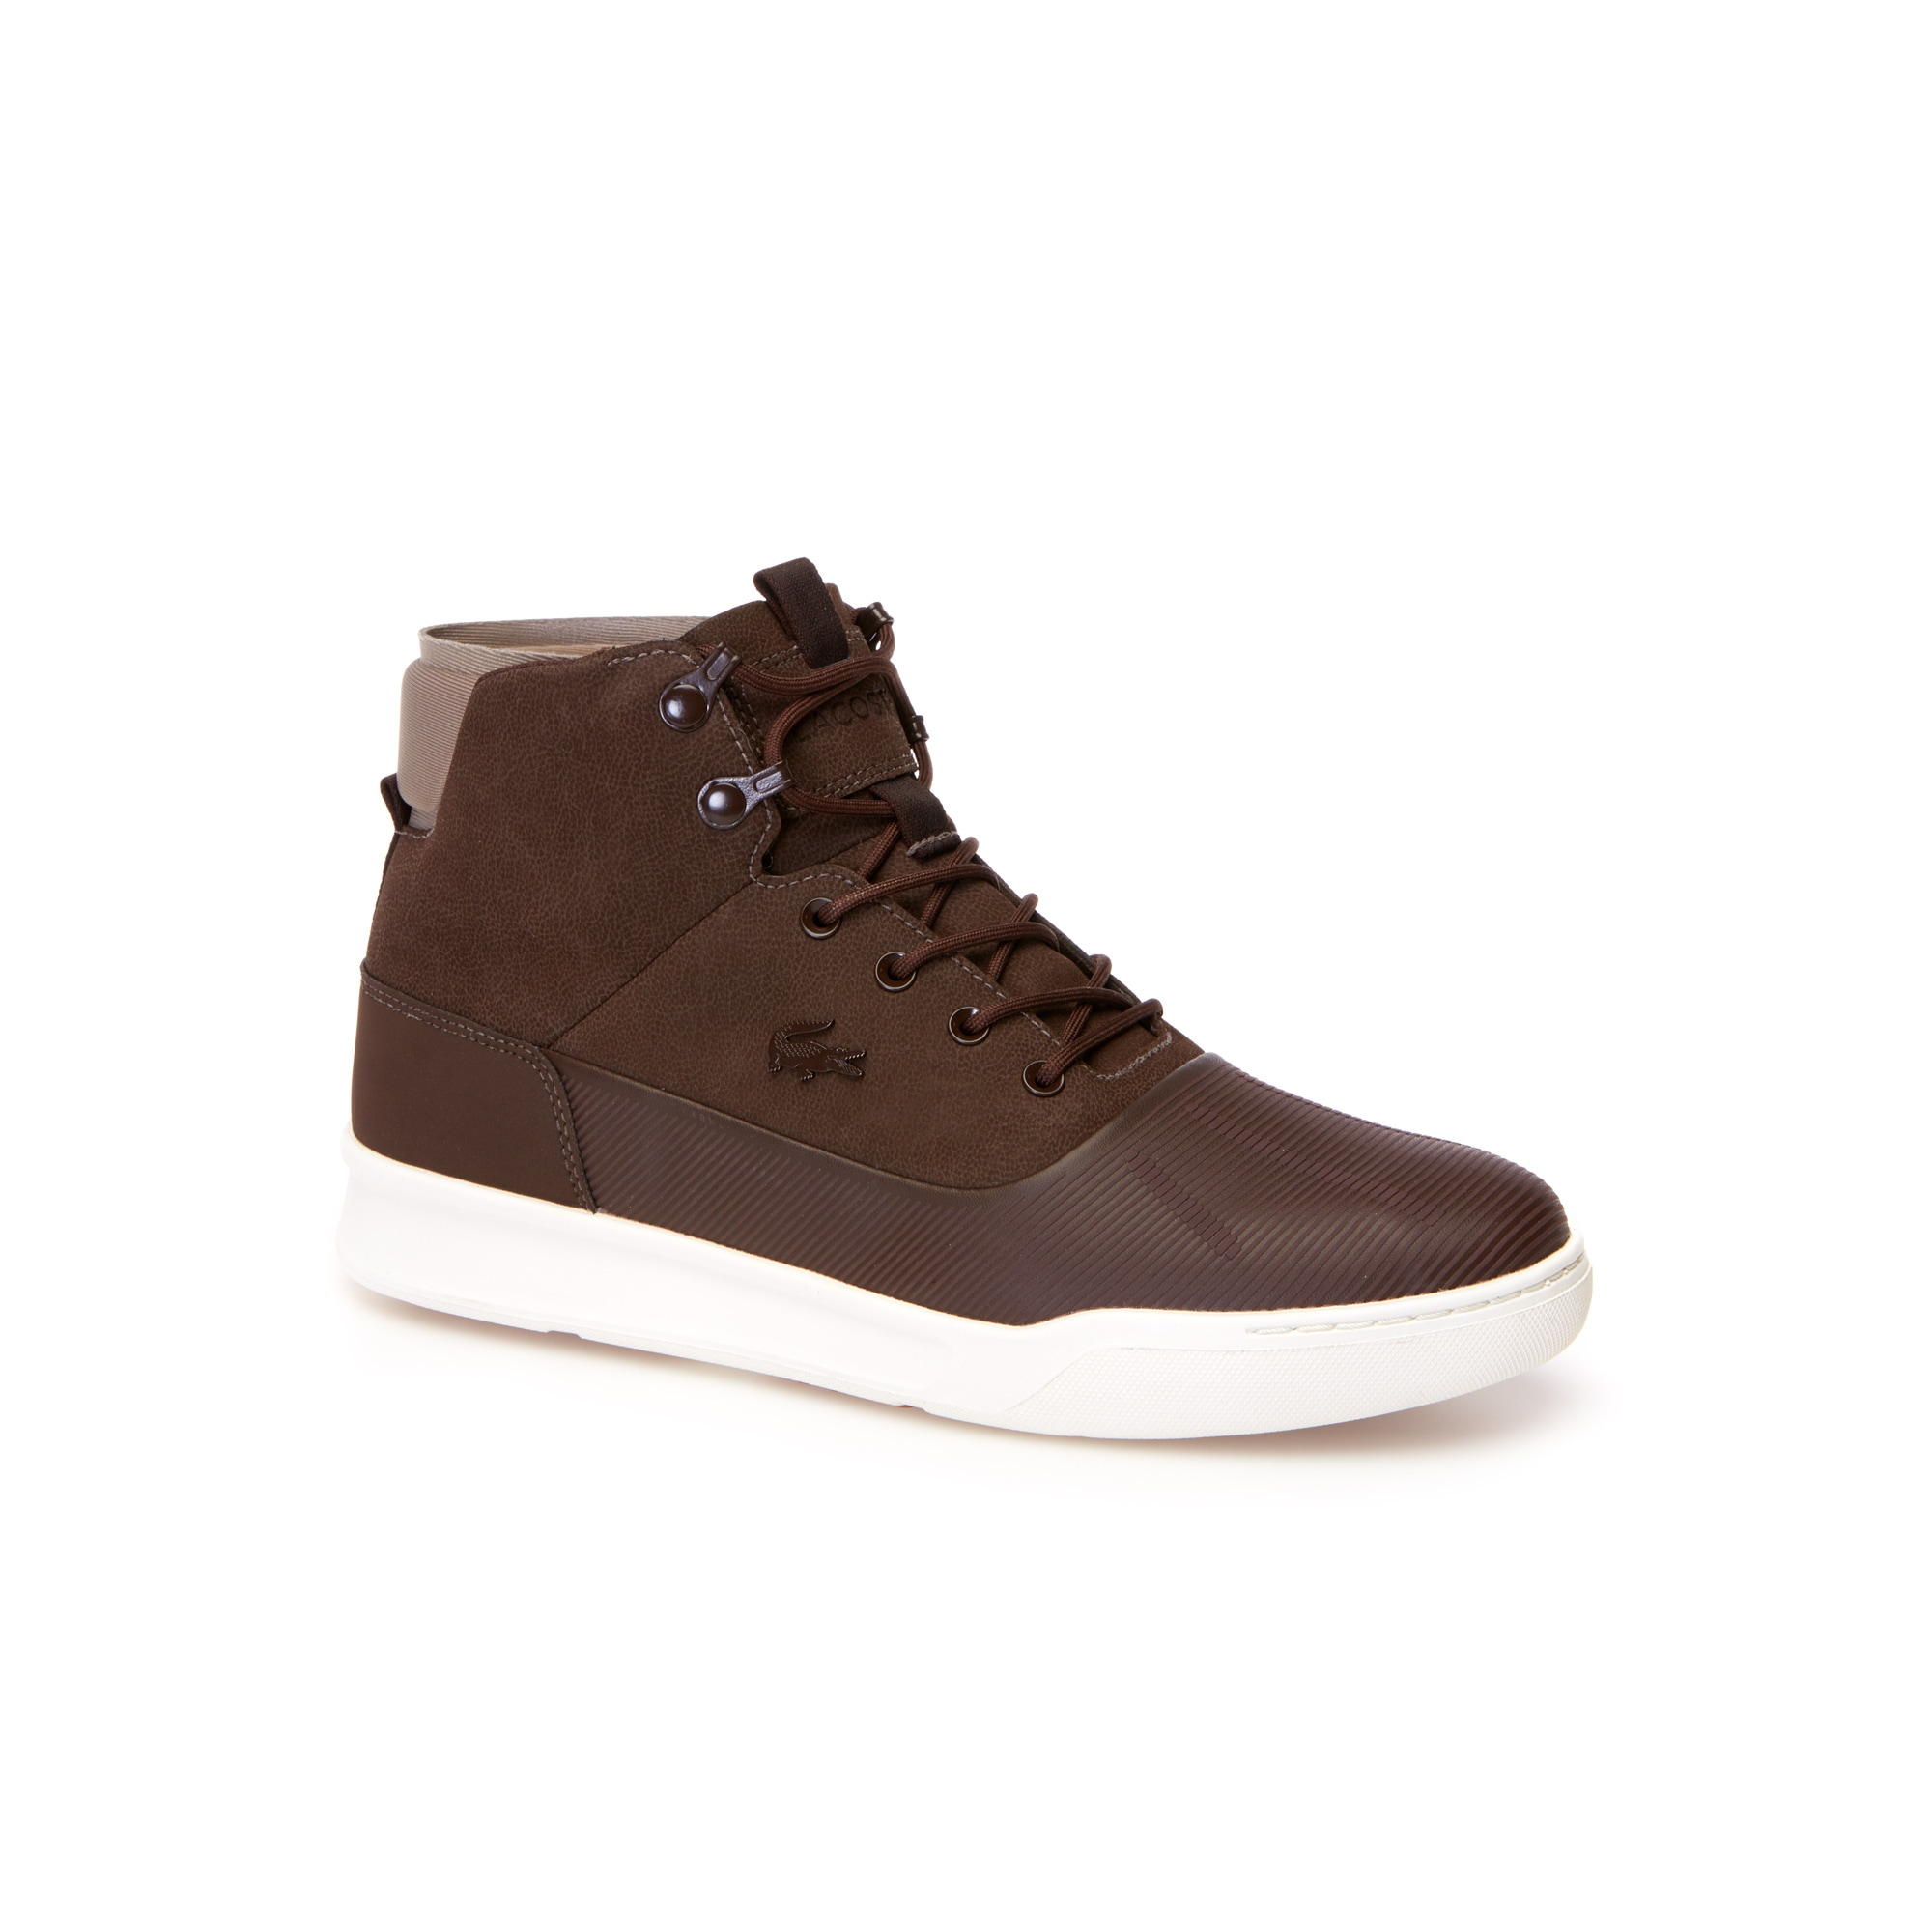 Men's Explorateur Hydro Leather Boots